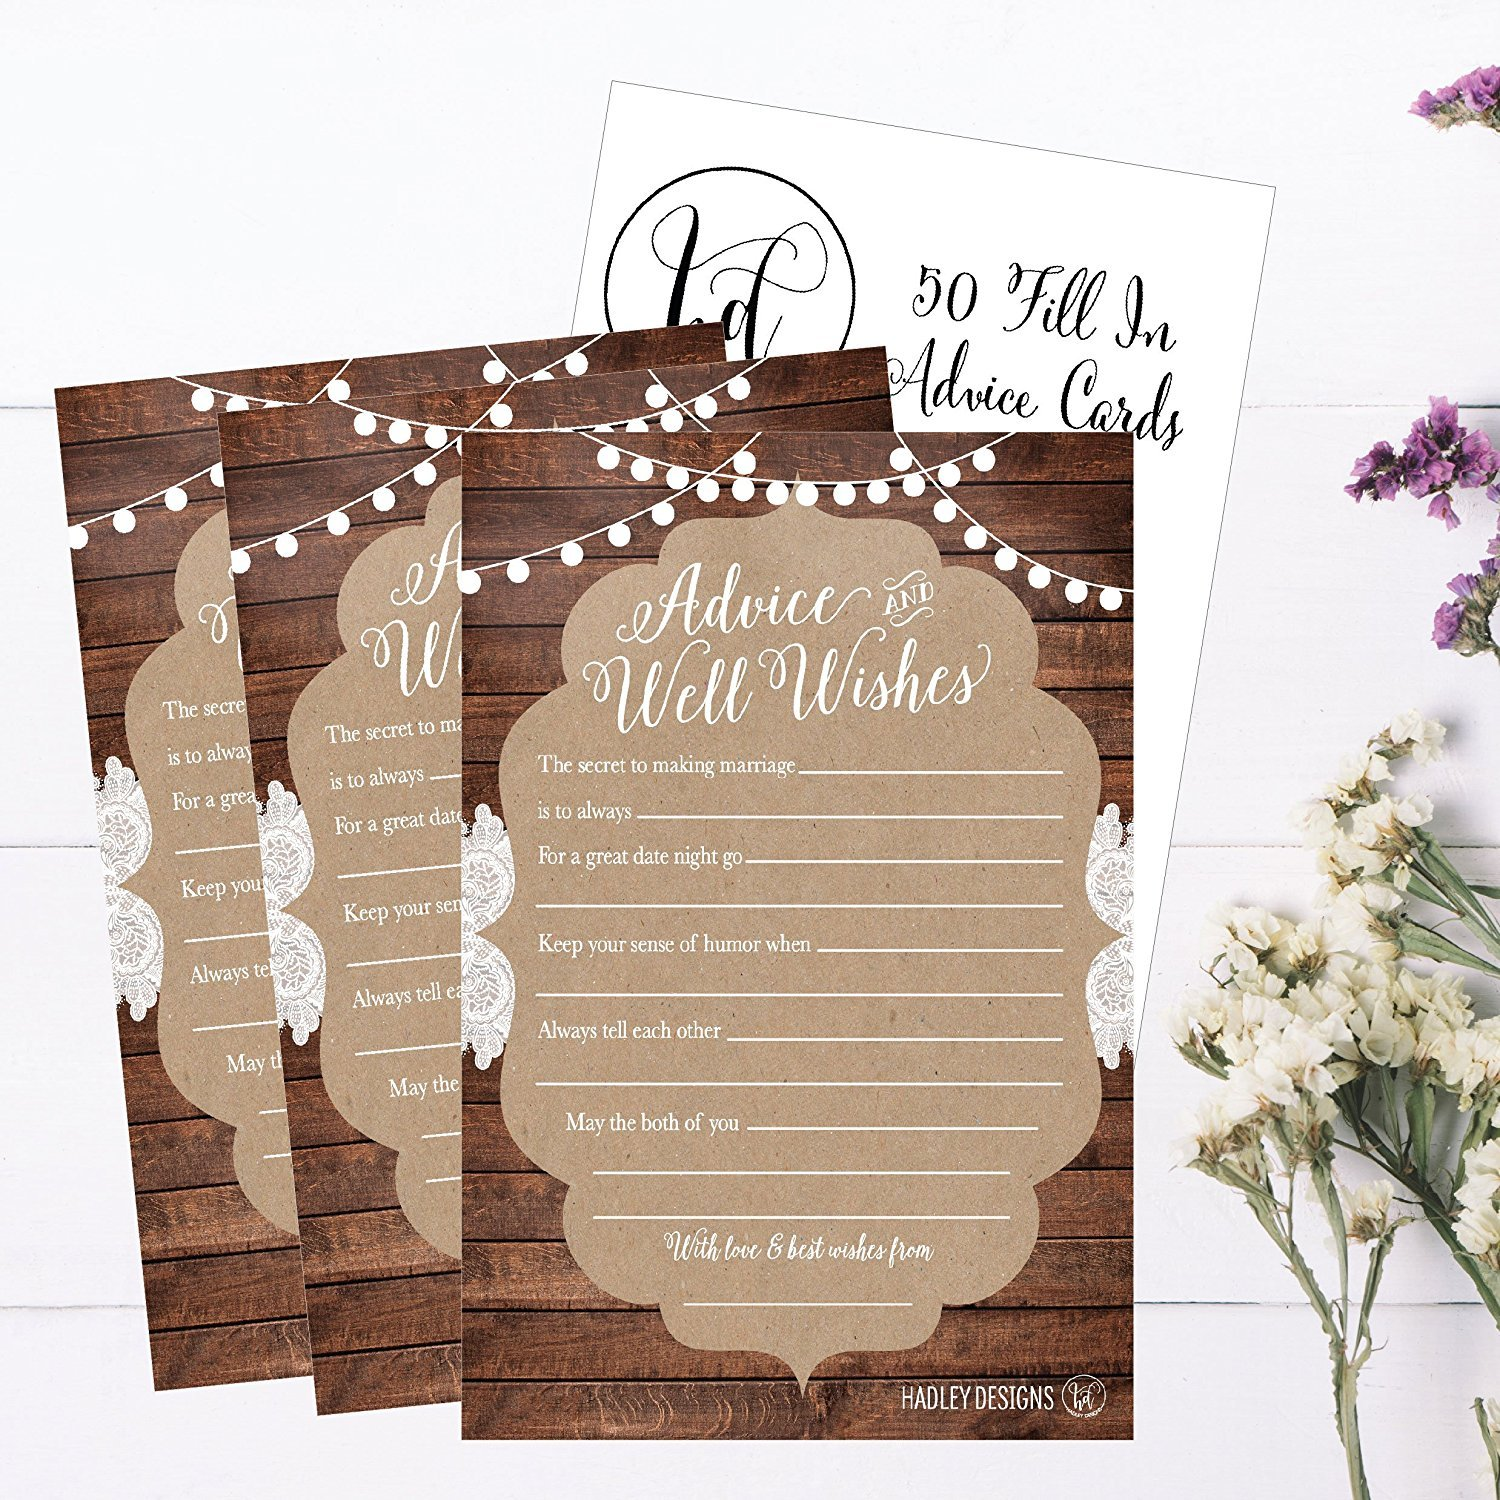 4x6 Advice for Wedding with Prompts Simple Elegant Marriage Best Wishes Advice and Wishes for The Bride and Groom Cards 50 Cards 321Done